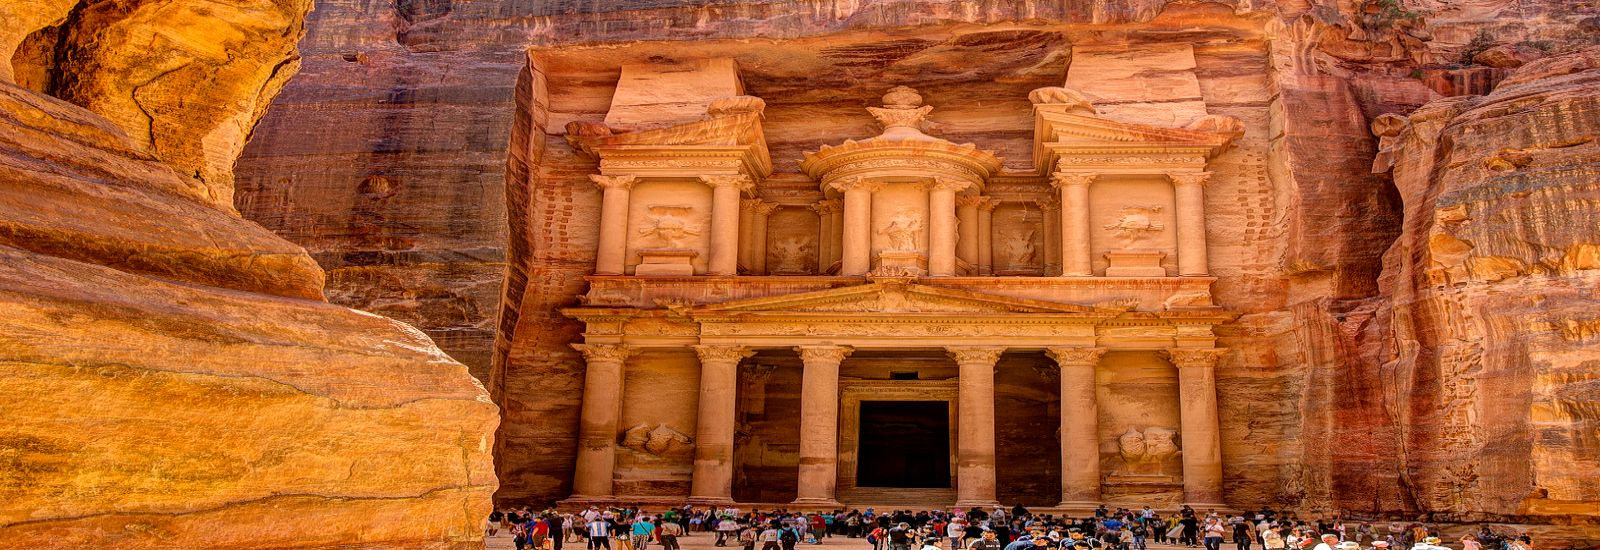 From Jerusalem/Tel Aviv: 3 Day Tour to Petra, Wadi Rum and Jordan Highlights